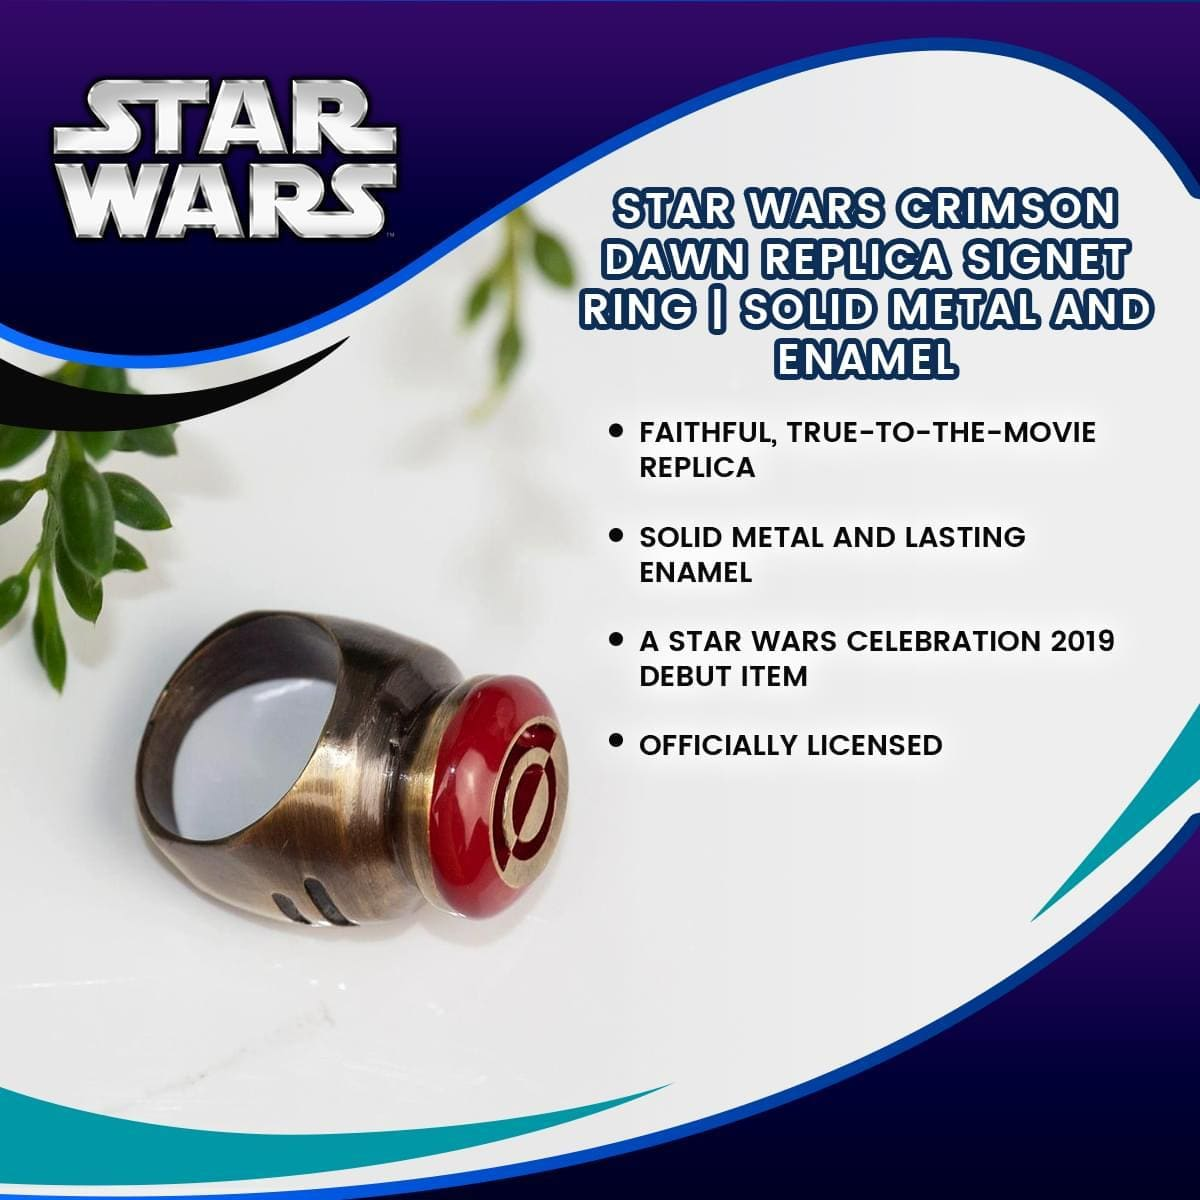 Star Wars Crimson Dawn Replica Signet Ring | Solid Metal and Enamel